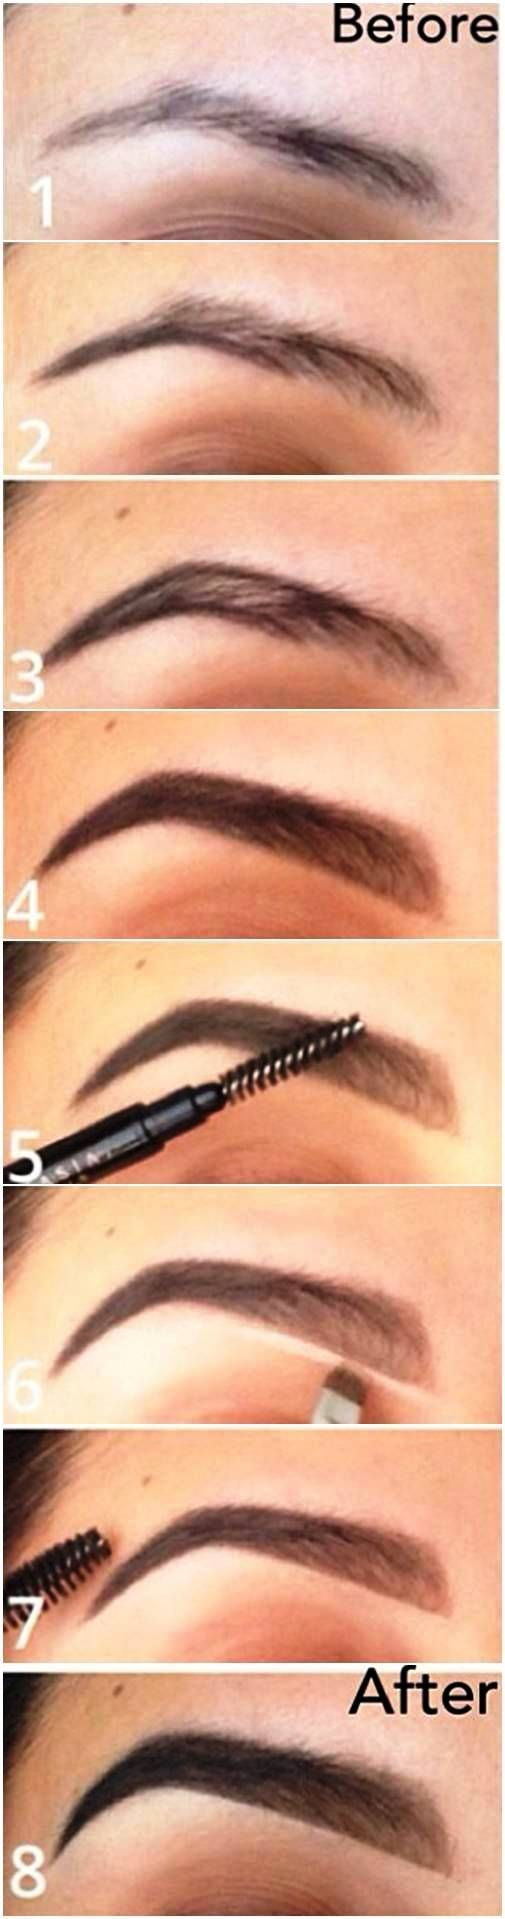 How To Fill In Your Eyebrows And Make Them Look Thicker In 2019